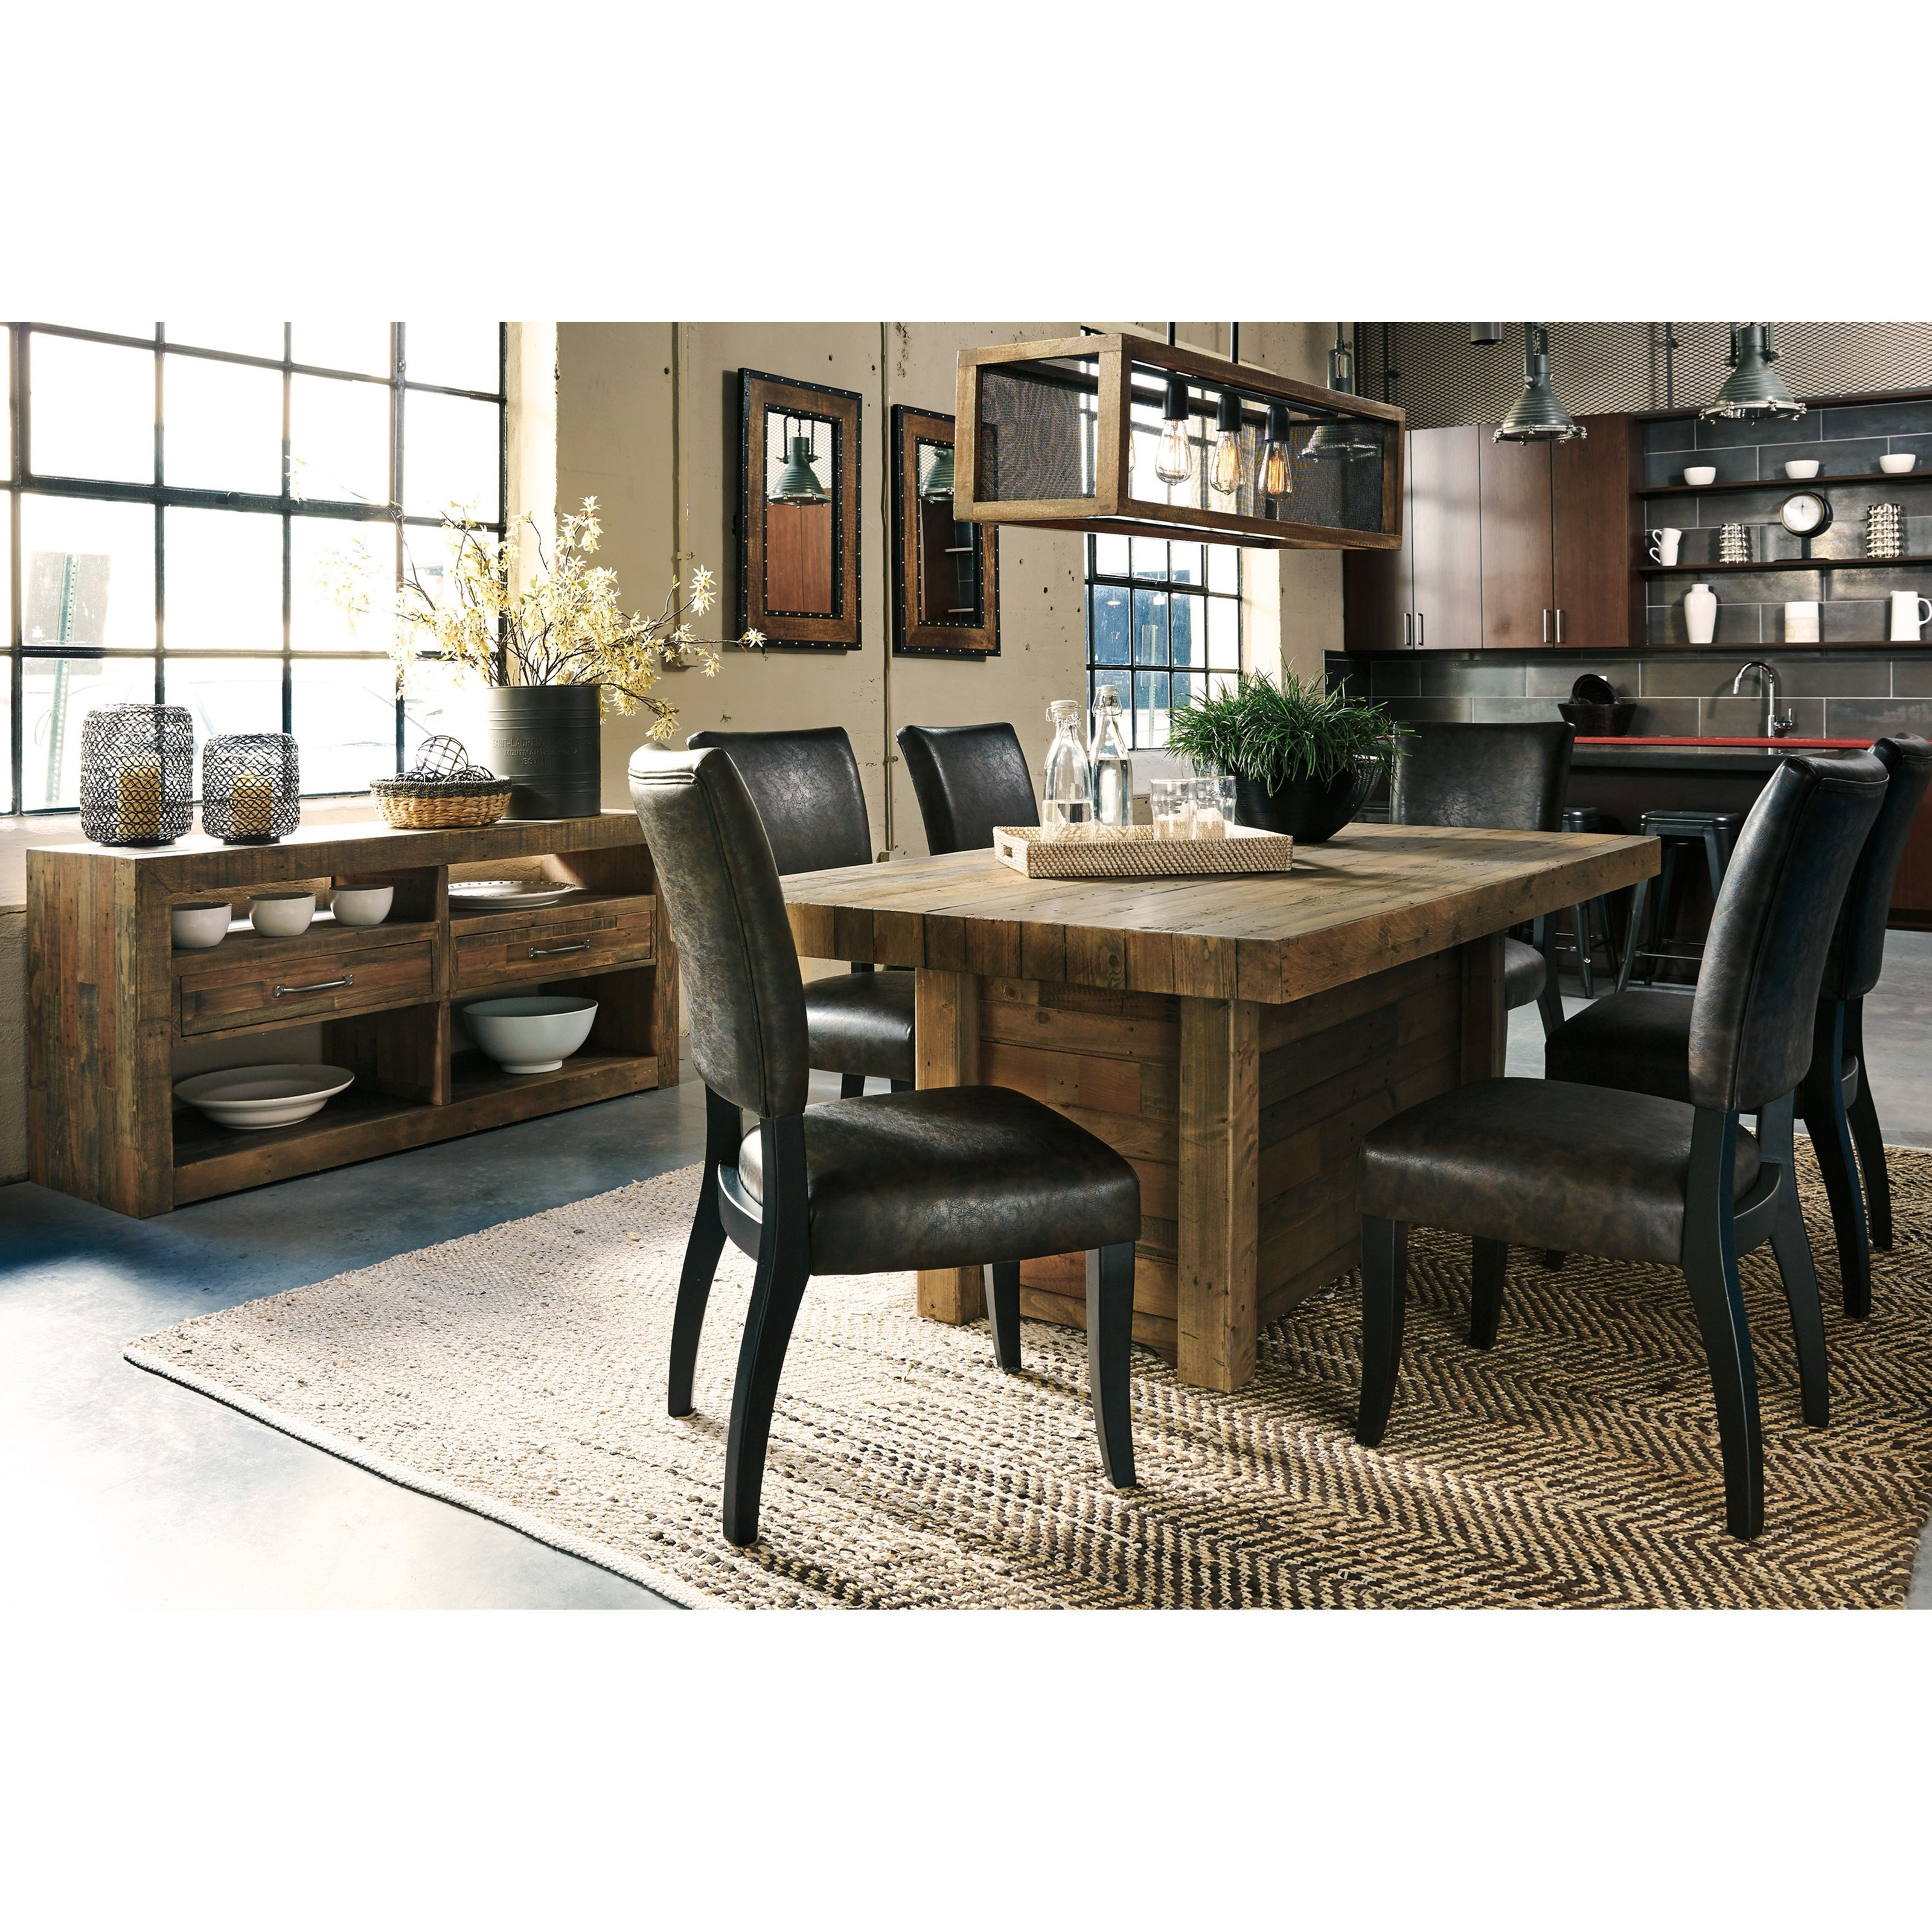 Sommerford Dining Room Group by Signature Design by Ashley at Home Furnishings Direct